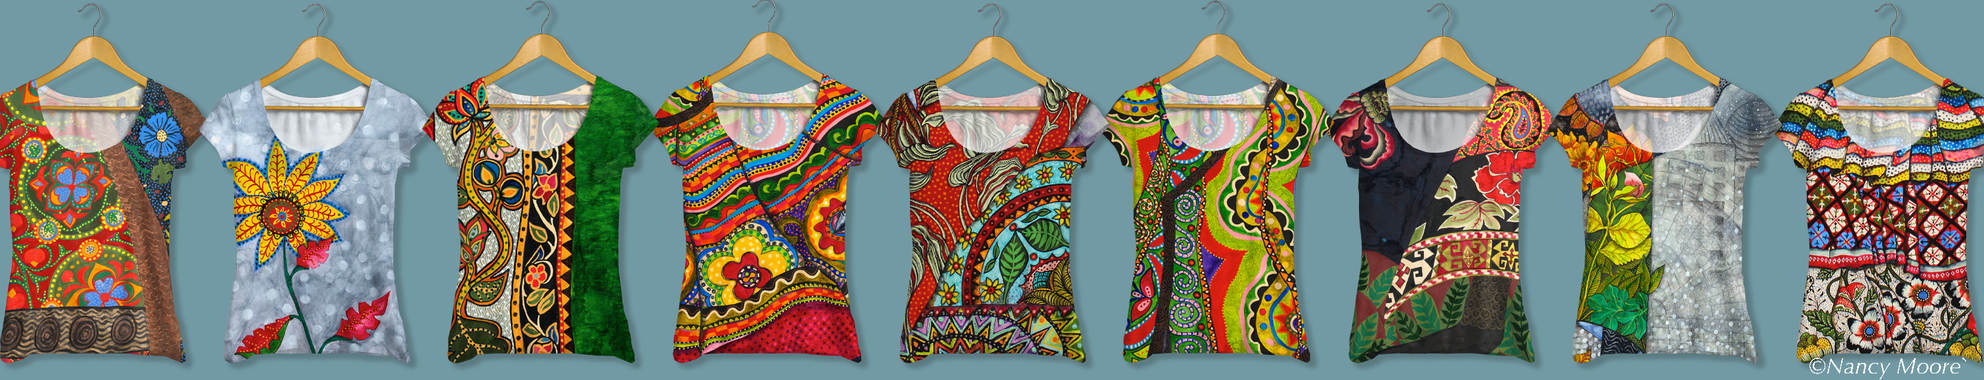 Here's a great way to see the detail in Nancy Moore's work.  We'd love to get these designs on some real shirts!